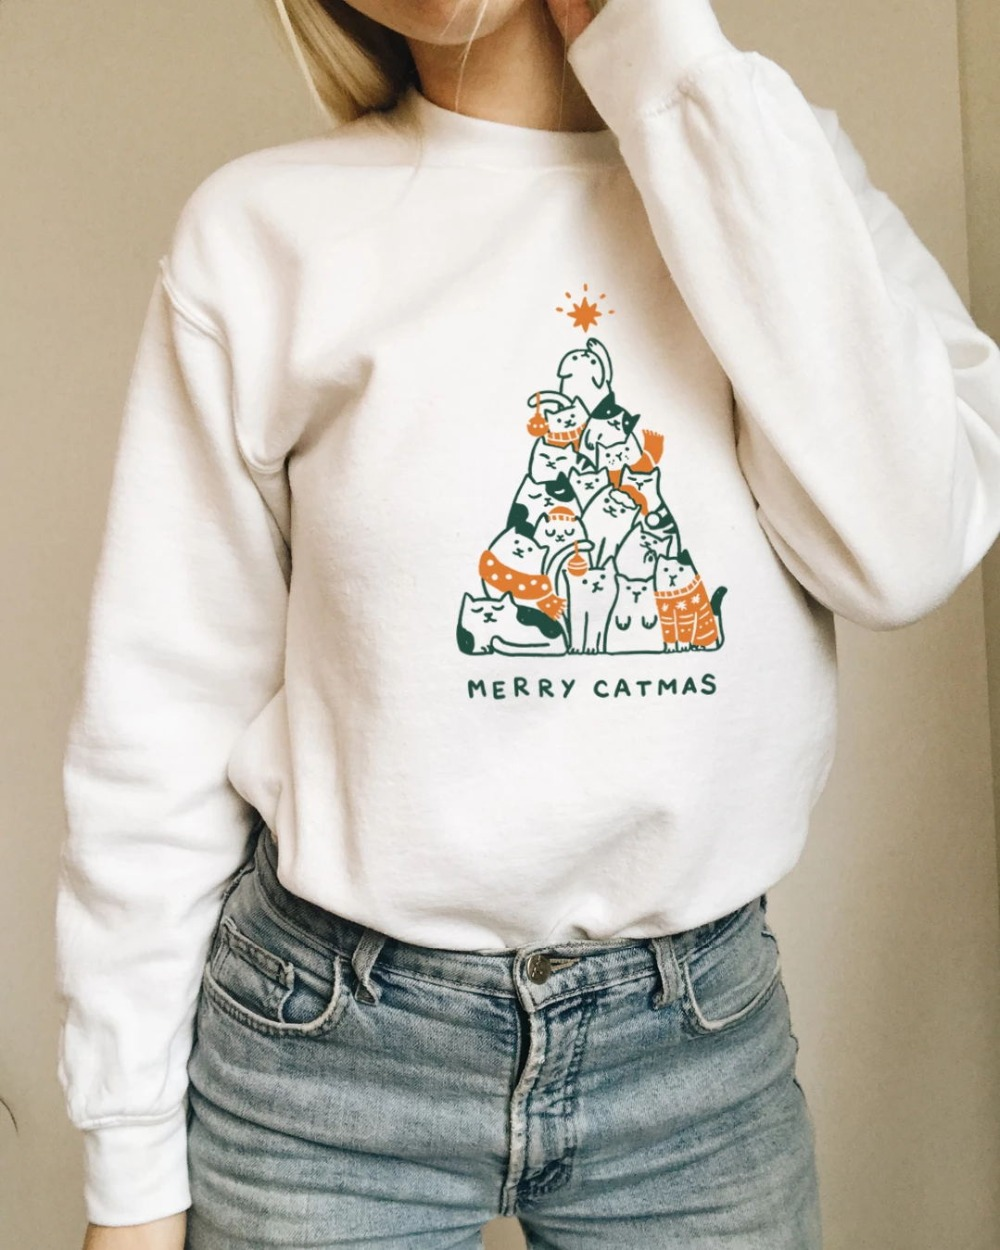 Merry Catmas Colored Sweatshirt Casual Stylish Funny Christmas Fashion Clothing Hoodies Merry Christmas Cat Jumper Outfits